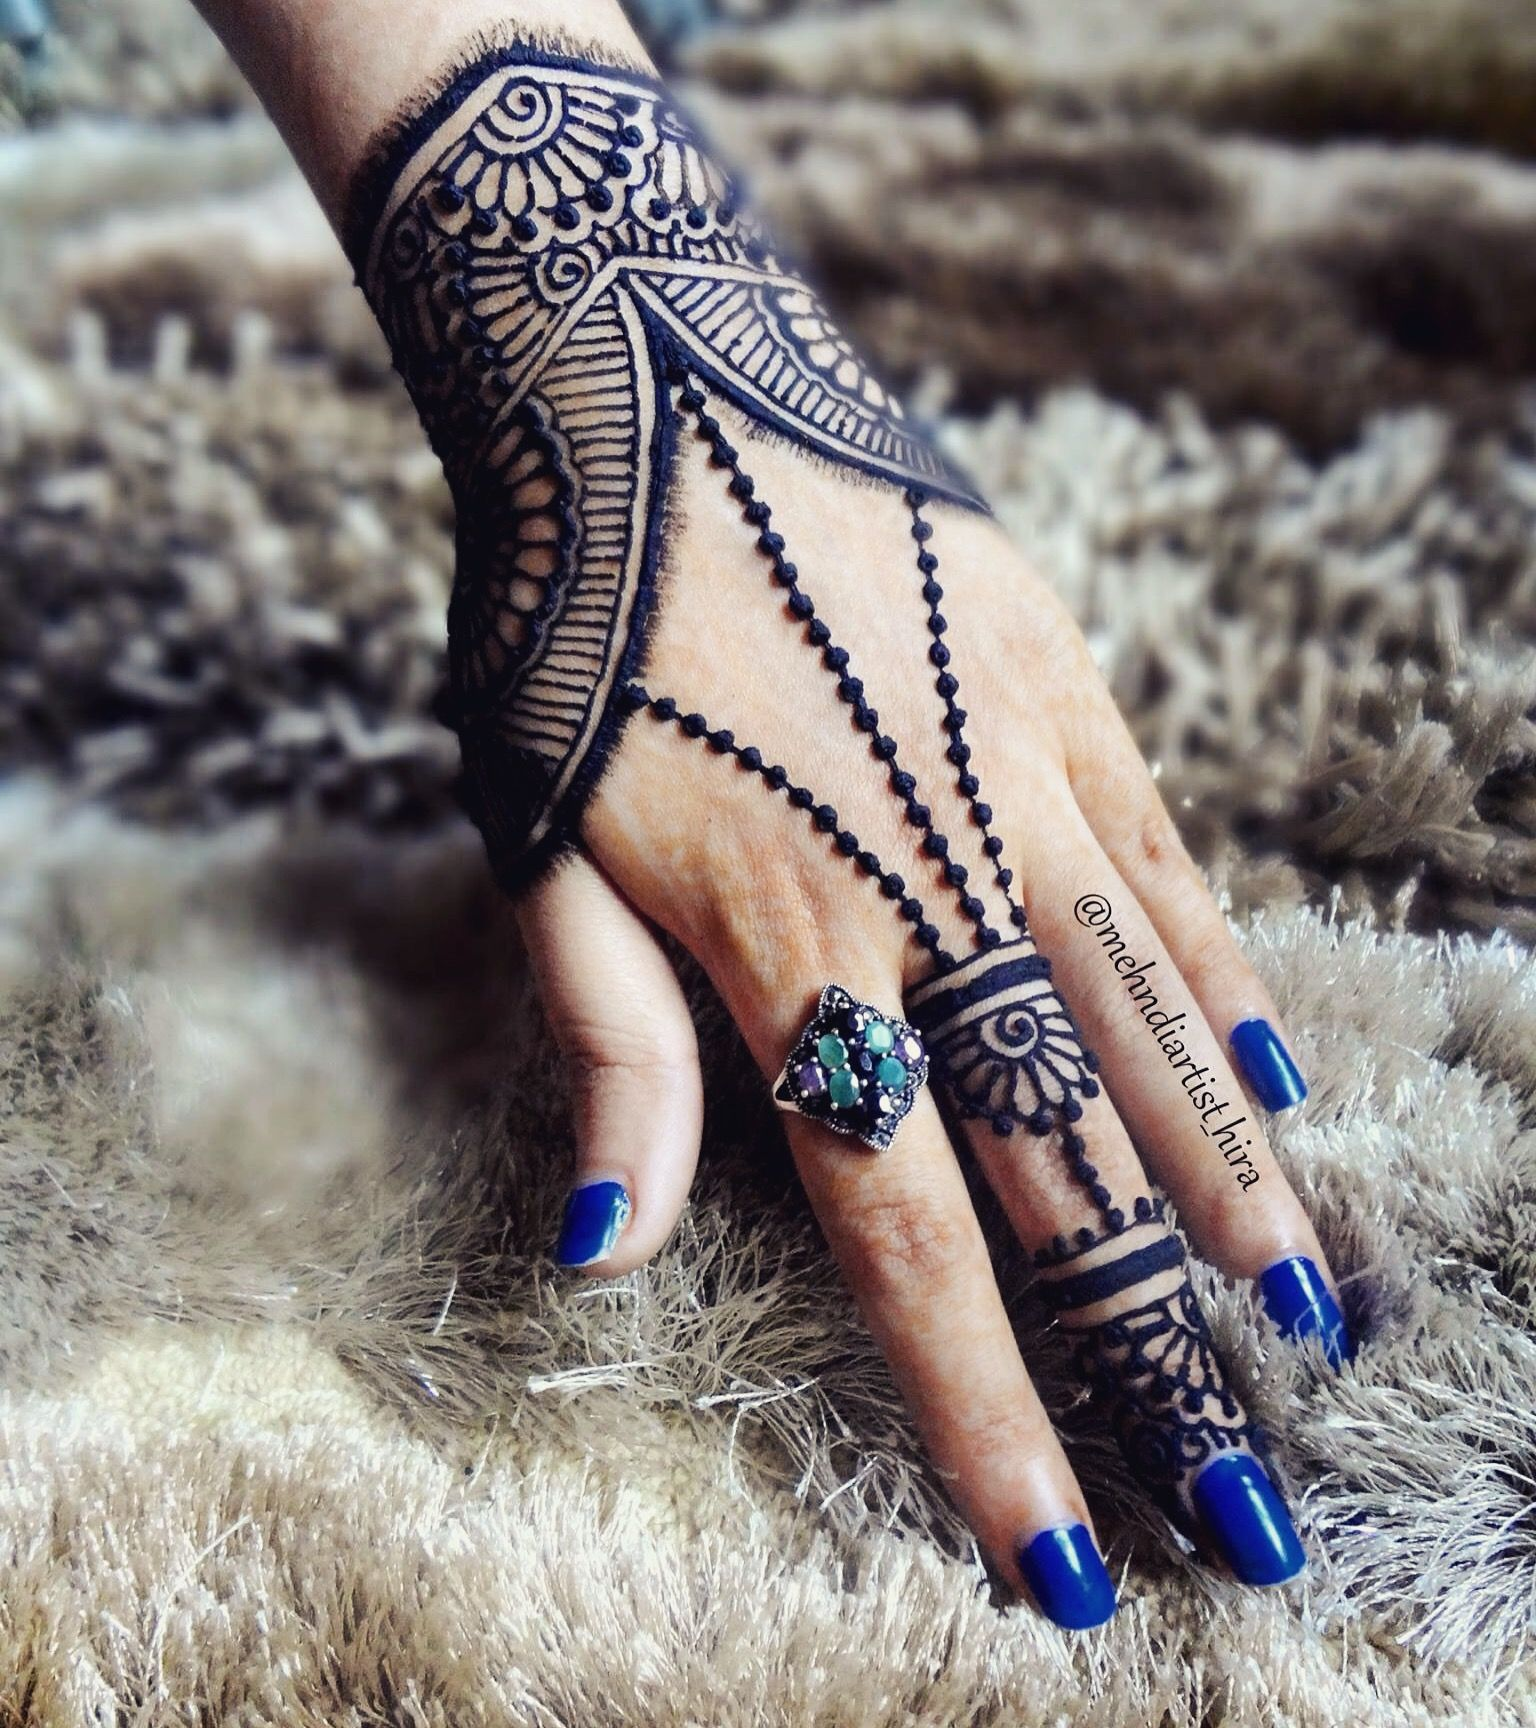 13 Unique Henna Designs Doing The Rounds This Wessing: Idea By Mehndiartist_hira On Henna Mehndi By @mehndiartist